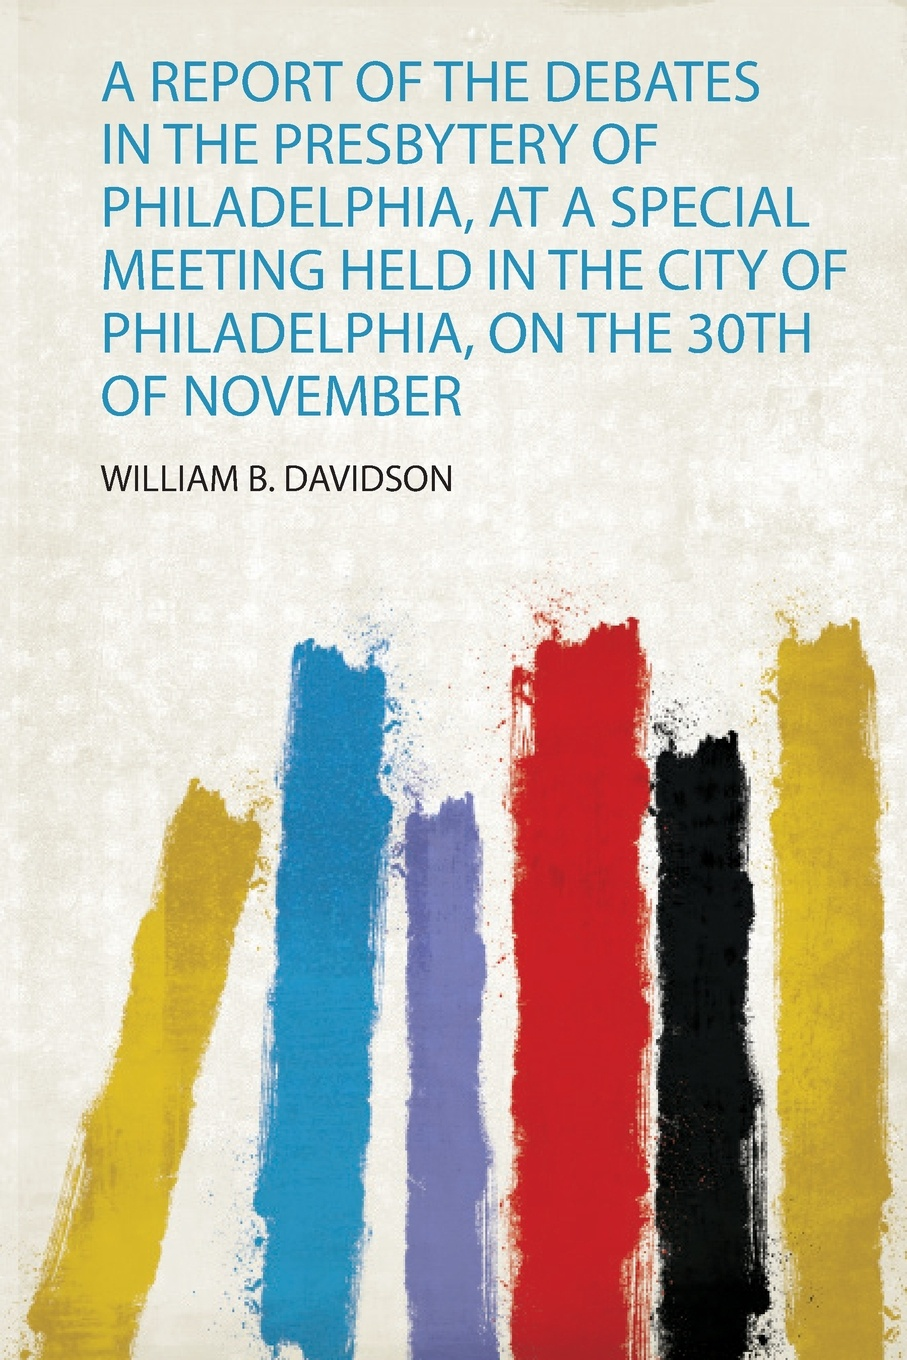 A Report of the Debates in the Presbytery of Philadelphia, at a Special Meeting Held in the City of Philadelphia, on the 30Th of November rudolph hering report to the hon samuel h ashbridge mayor of the city of philadelphia on the extension and improvement of the water supply of the city of philadelphia